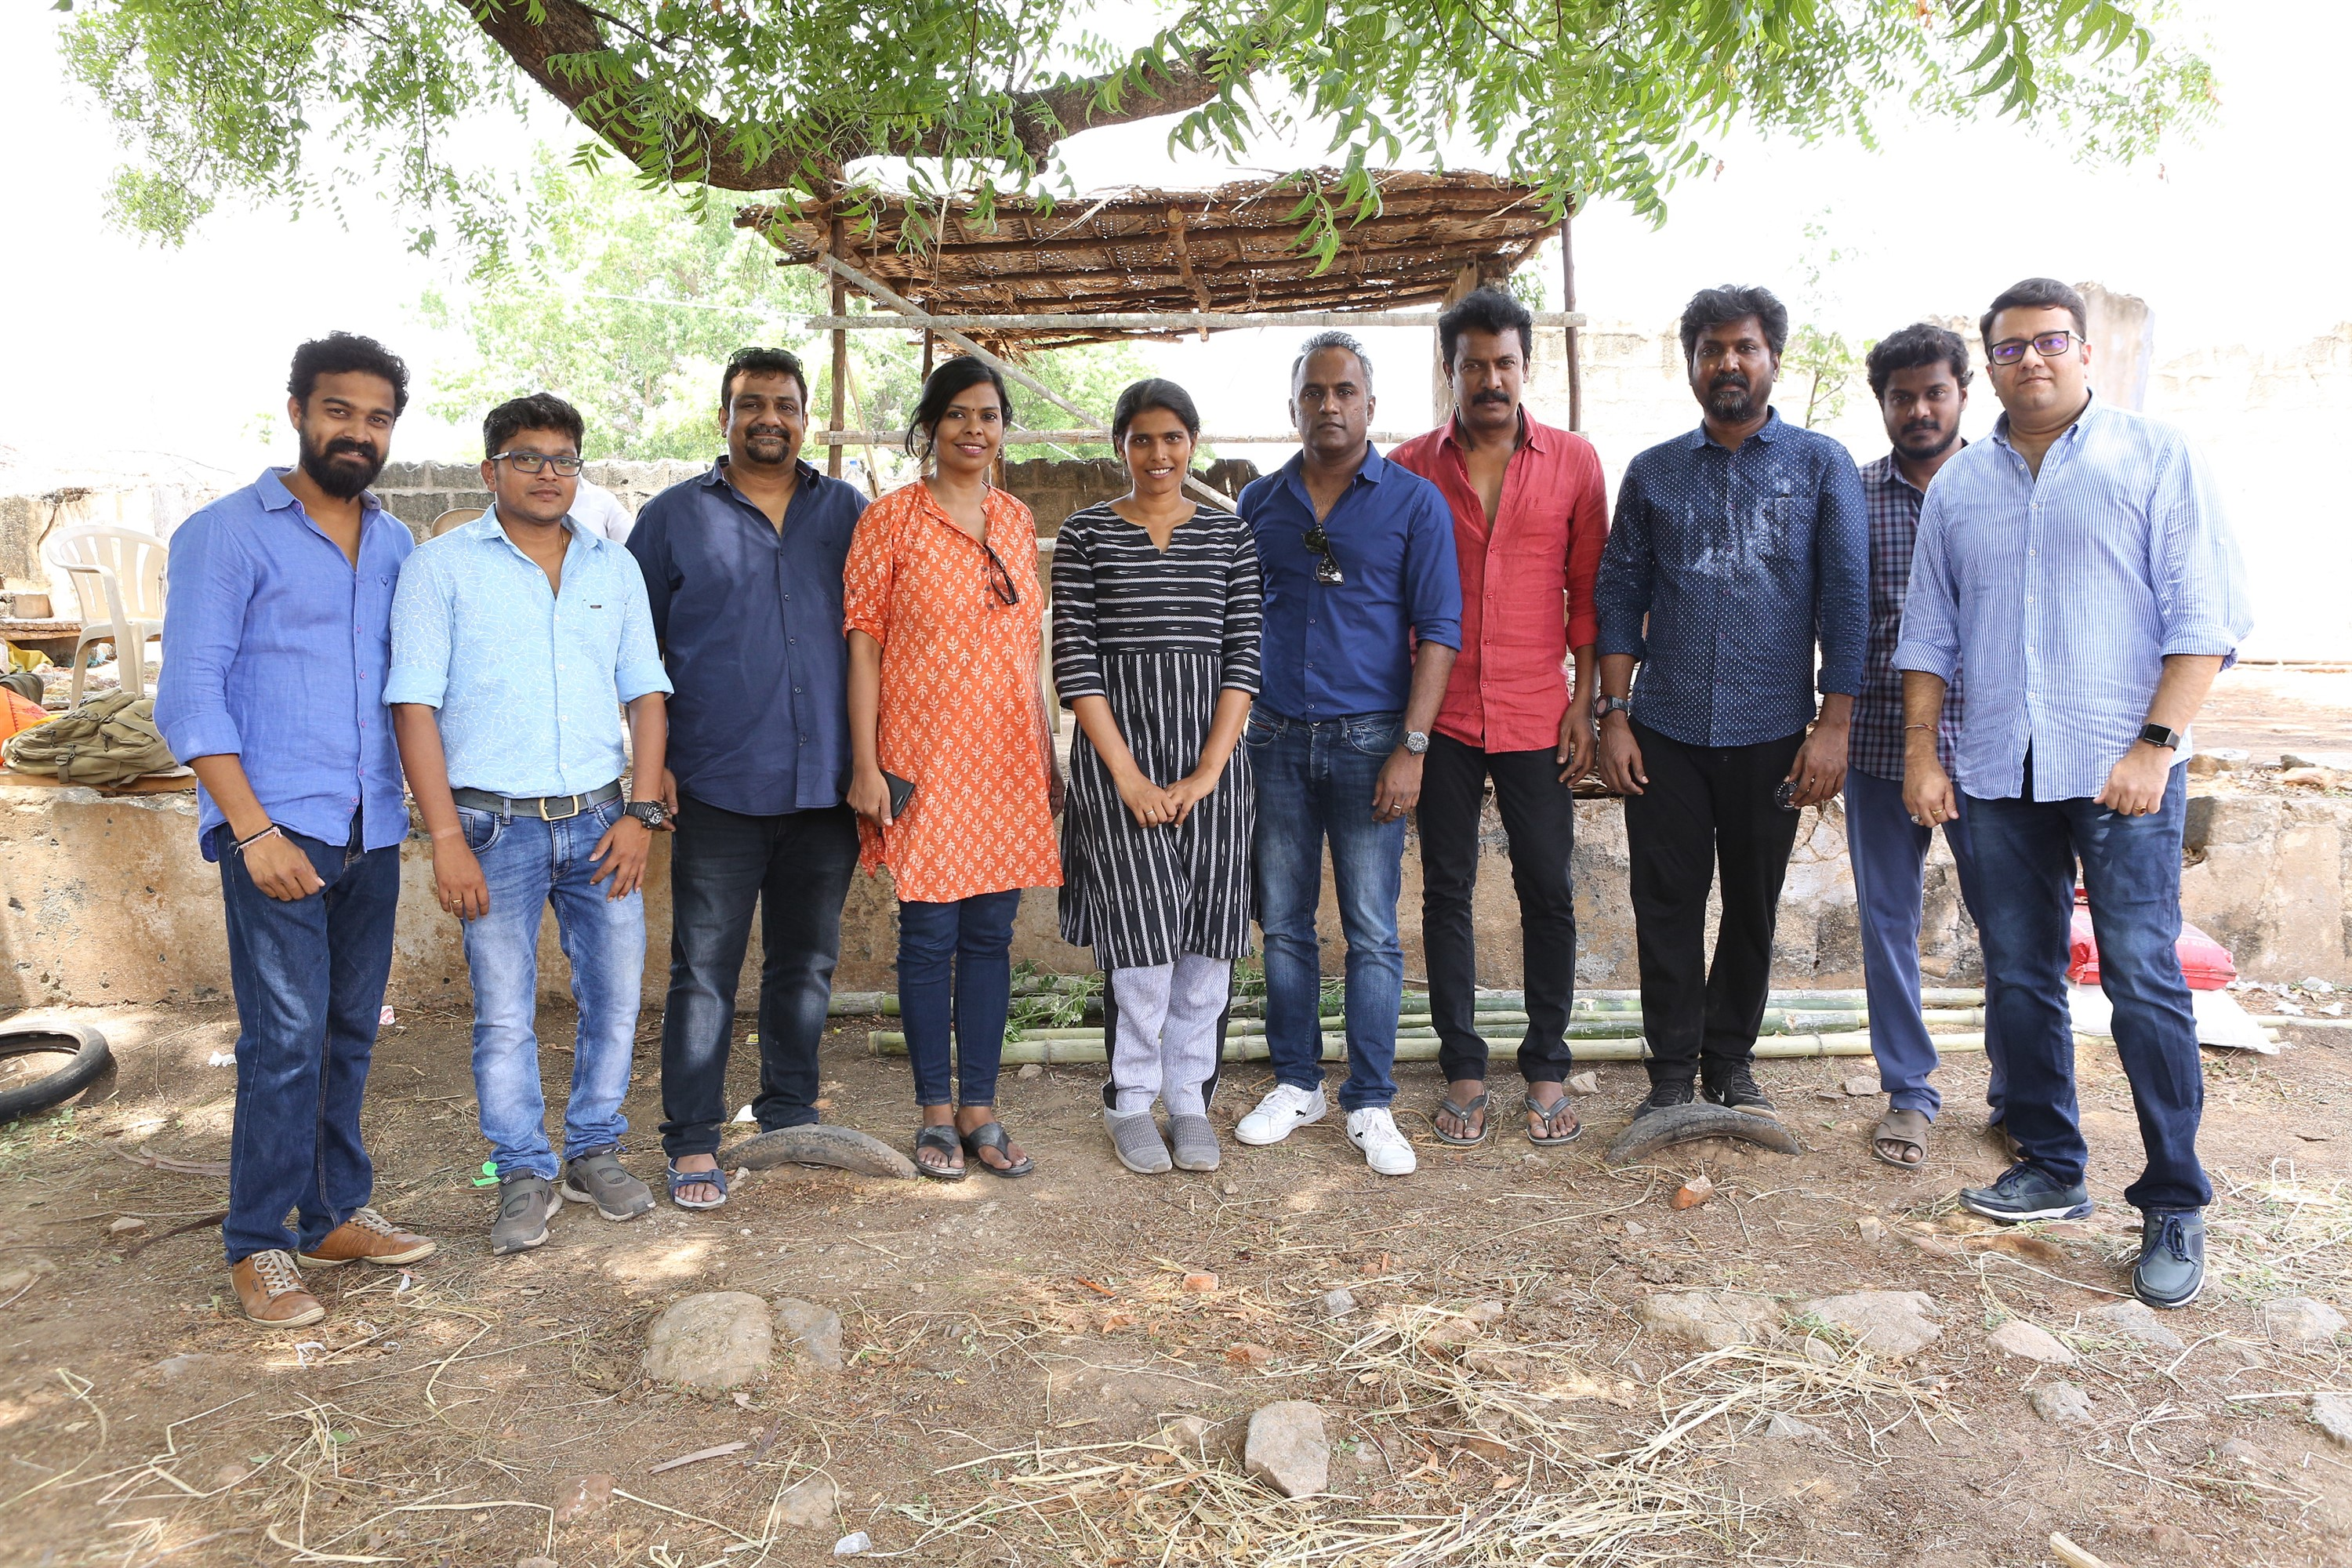 Producer S Sashikanth and Directors Pushkar & Gayatri come together for AELAY to be directed by Halitha Shameem